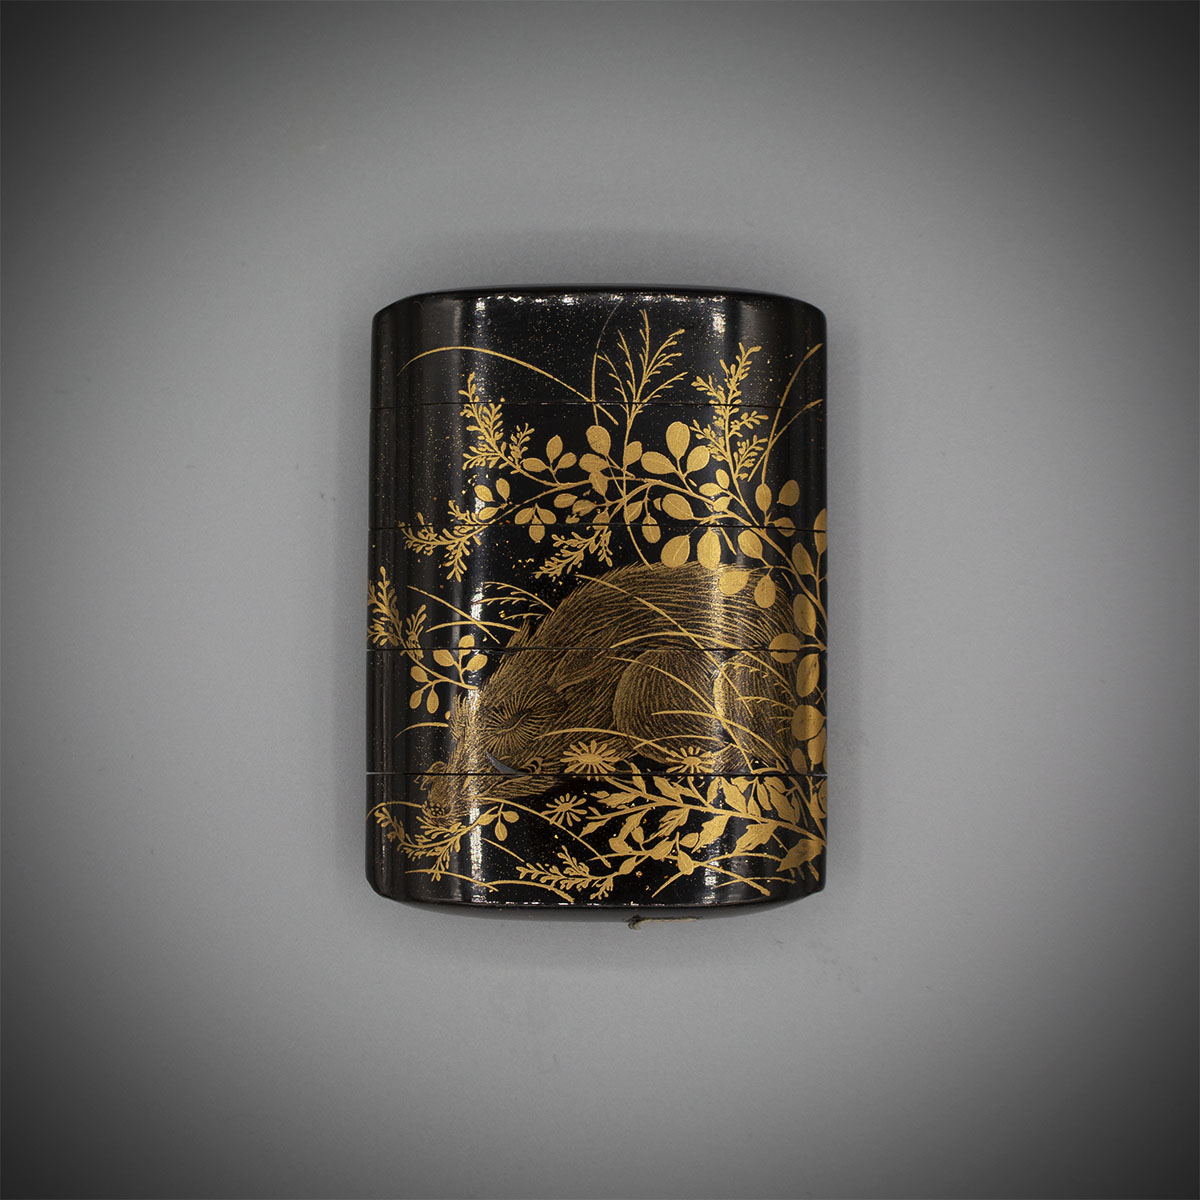 Small 4-case roiro lacquer inro with a sleeping boar by Shunsho, MR3158_v1